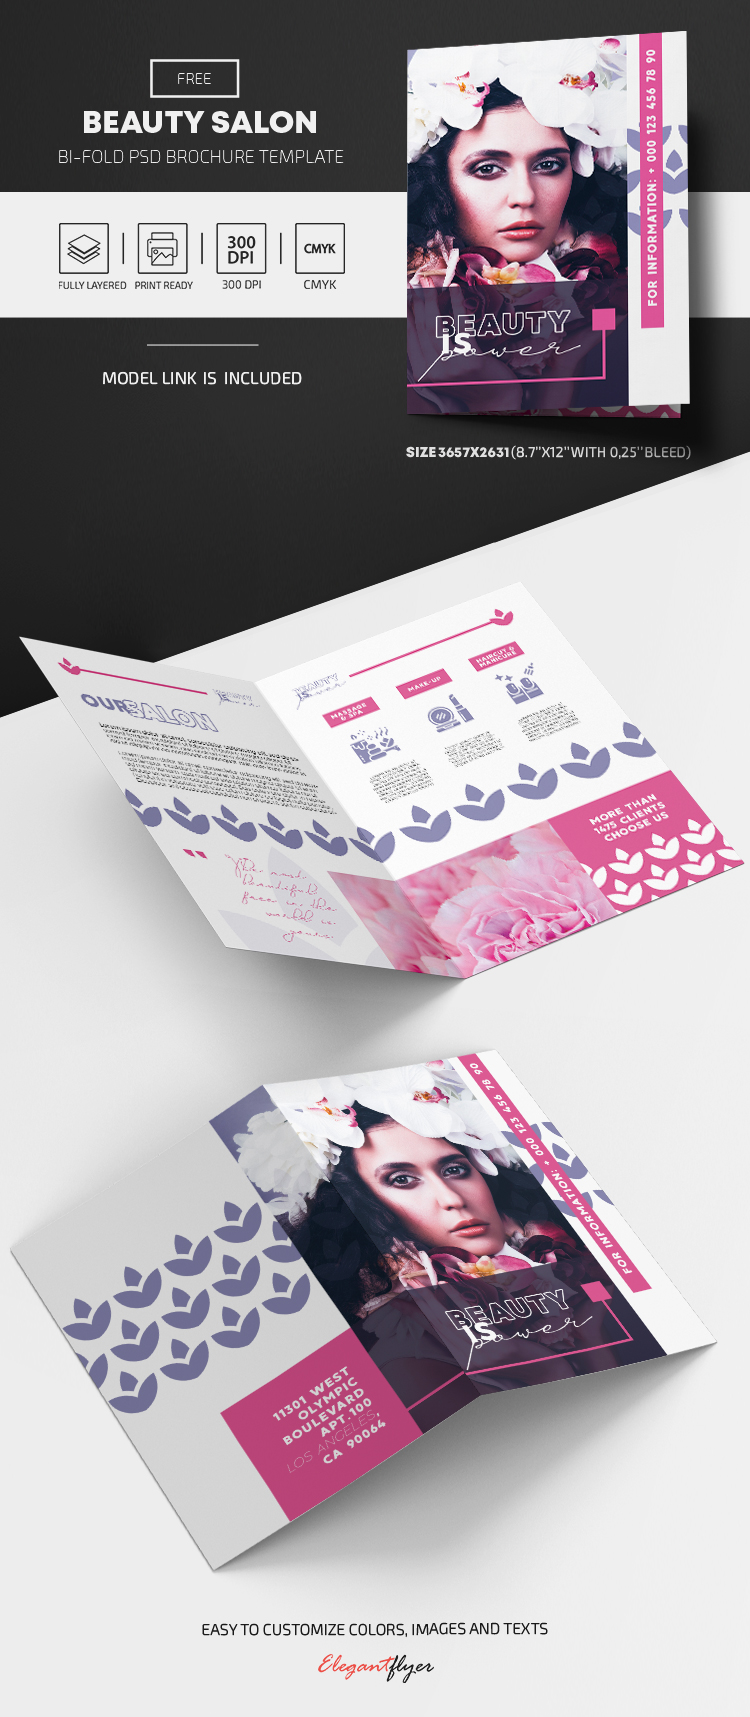 Beauty Salon – Free Bi-Fold Brochure